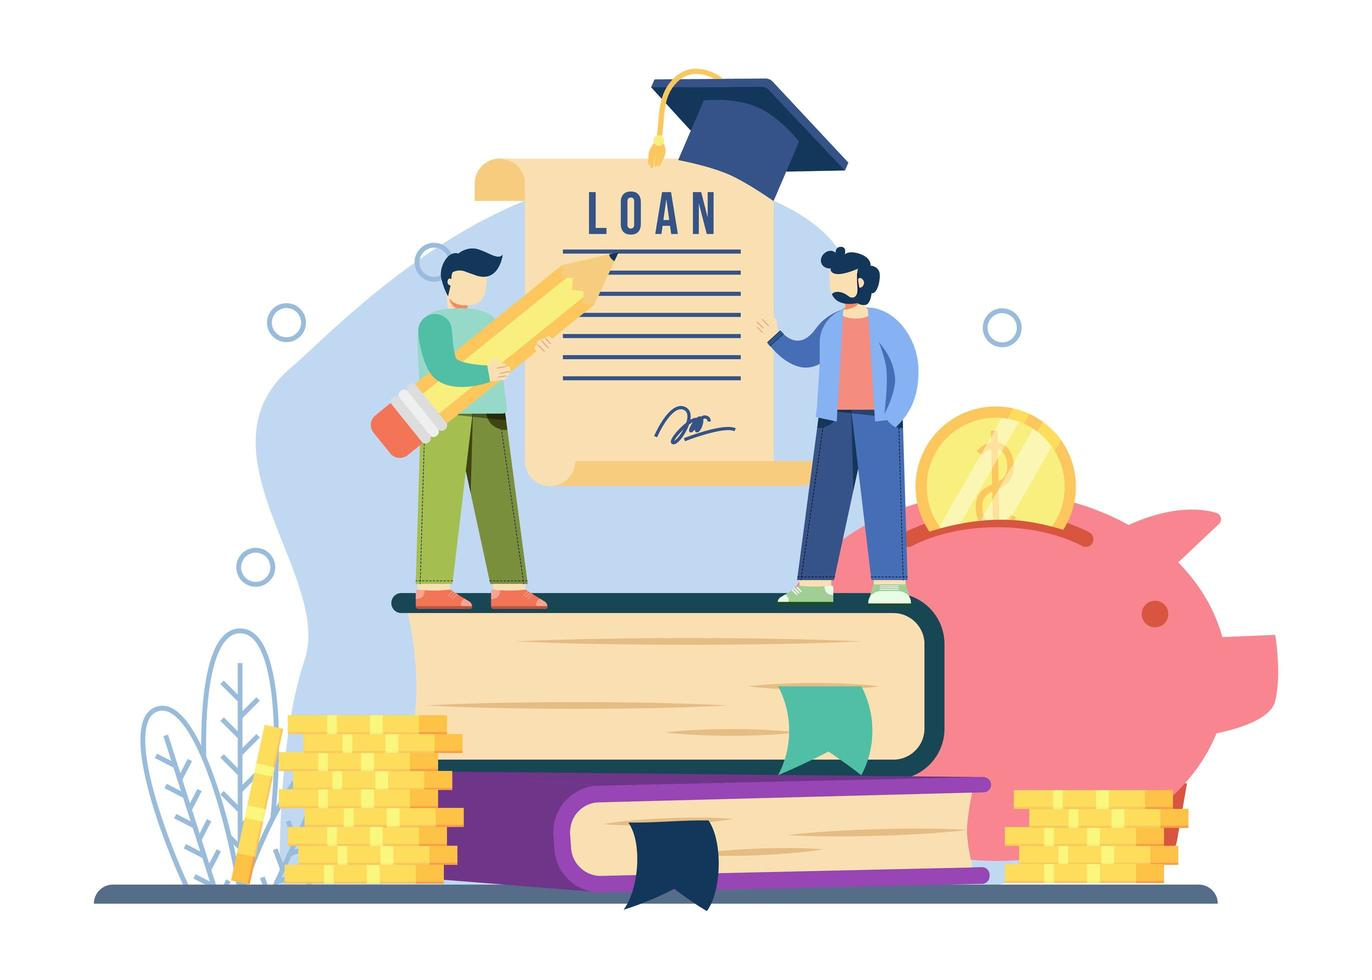 Student loan concept vector